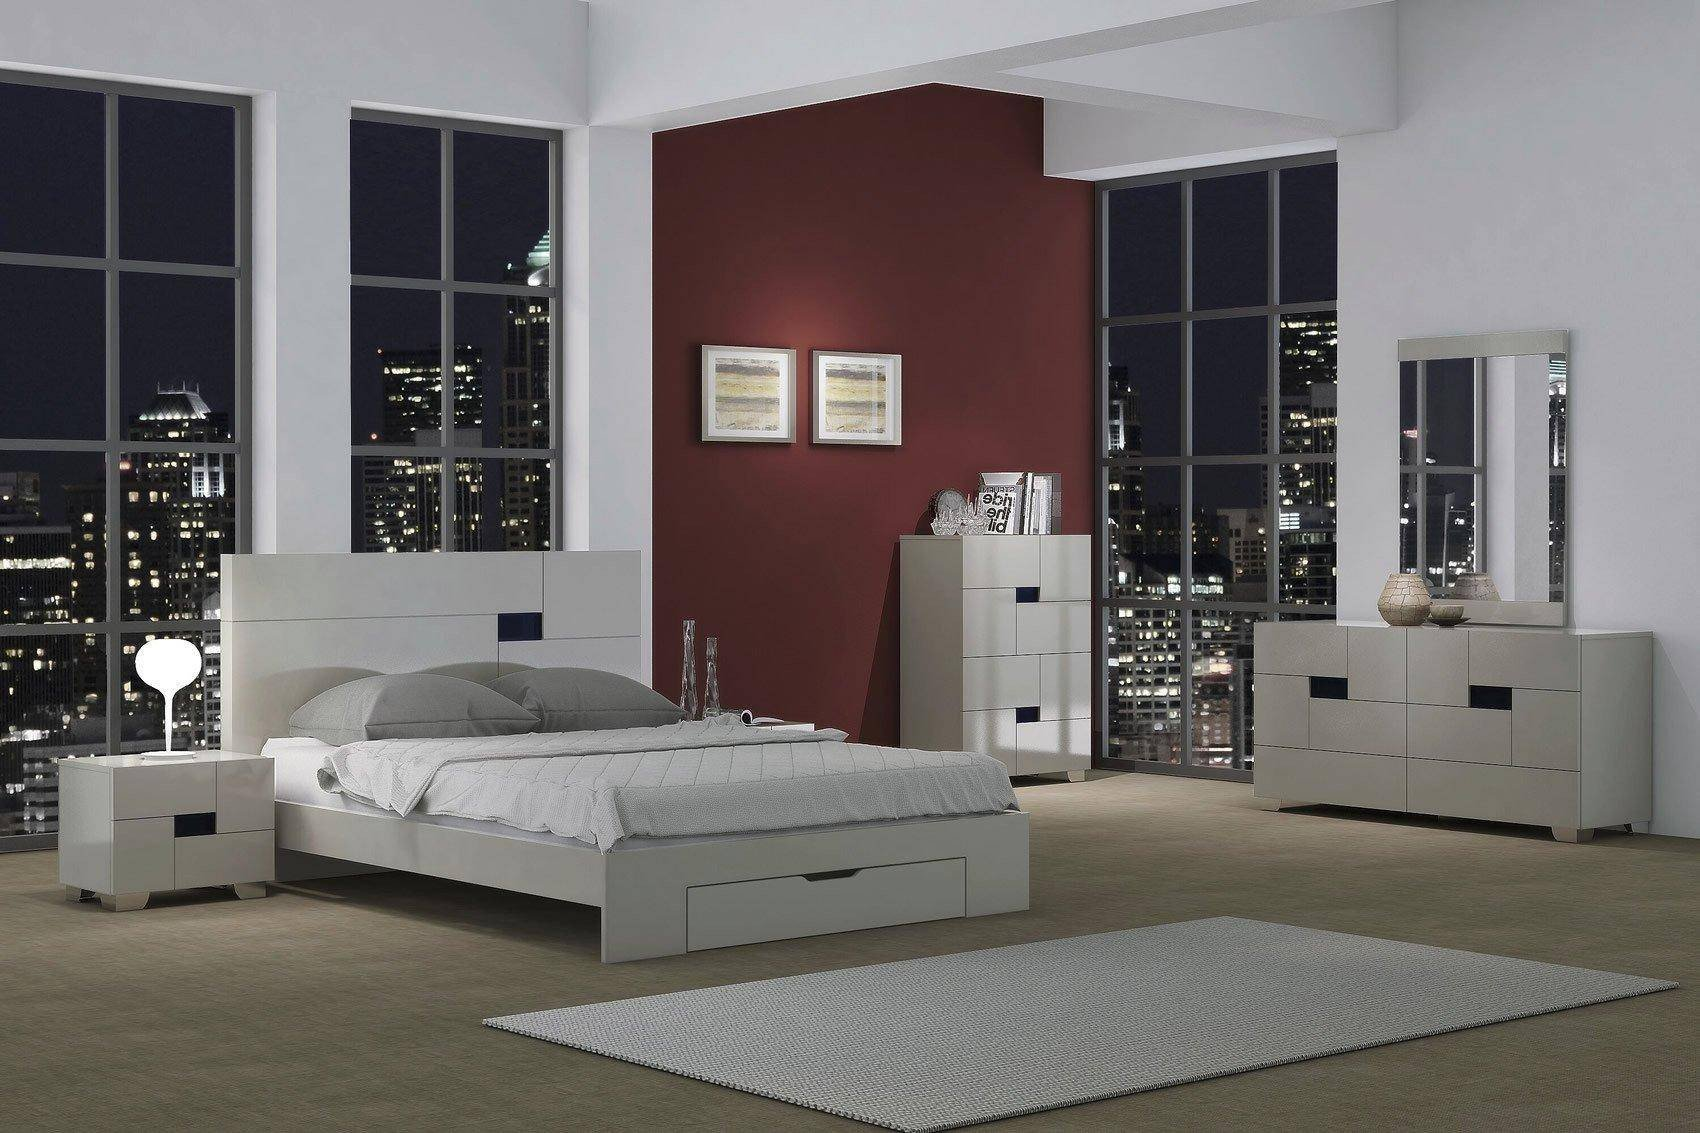 Gray and White Bedroom Beautiful Contemporary Light Gray Lacquer Storage Queen Bedroom Set